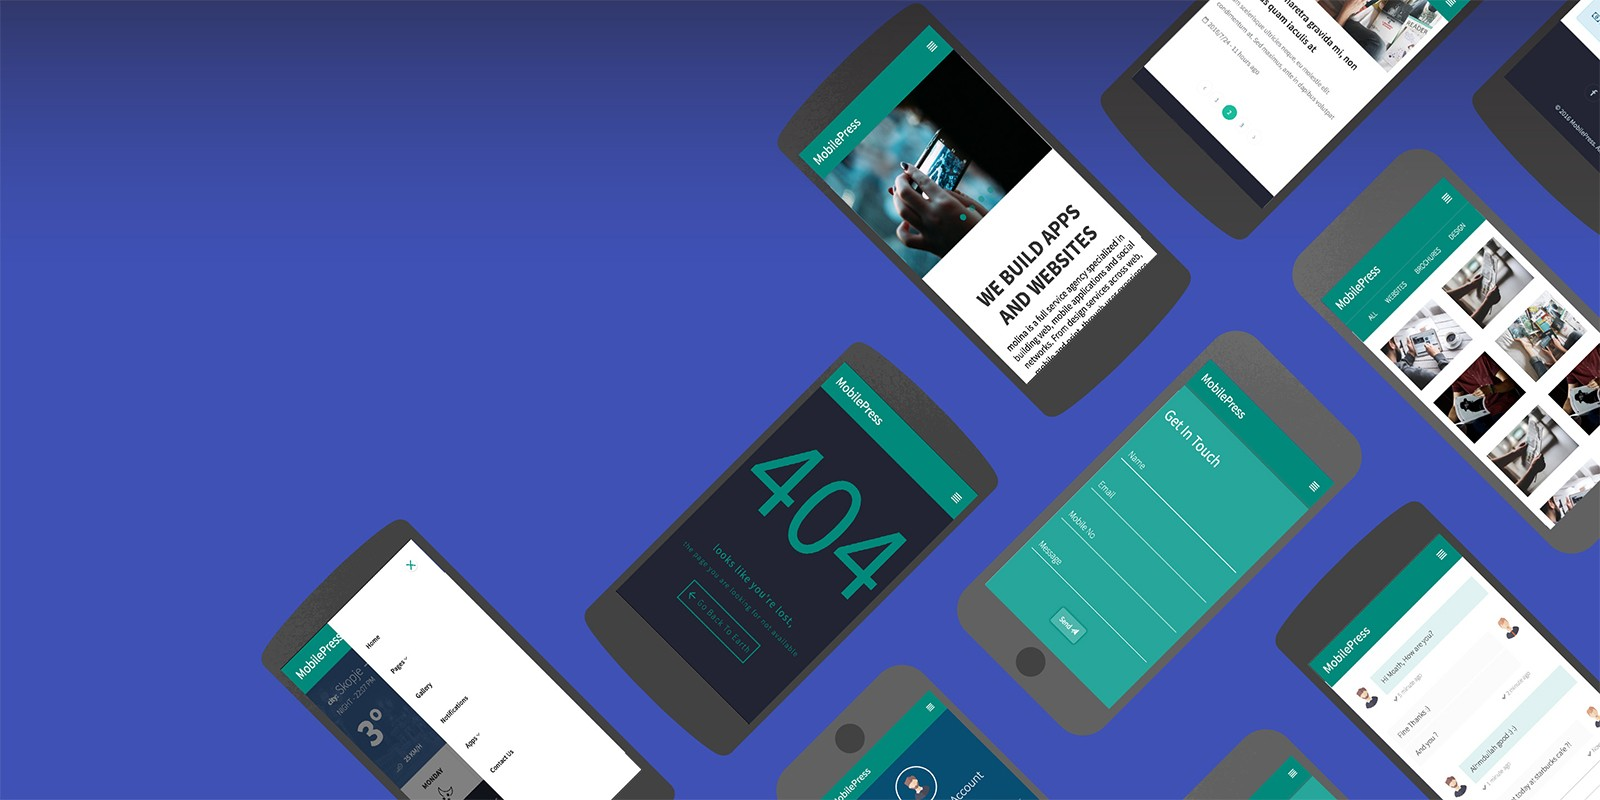 MobilePress - Material Design Mobile Template